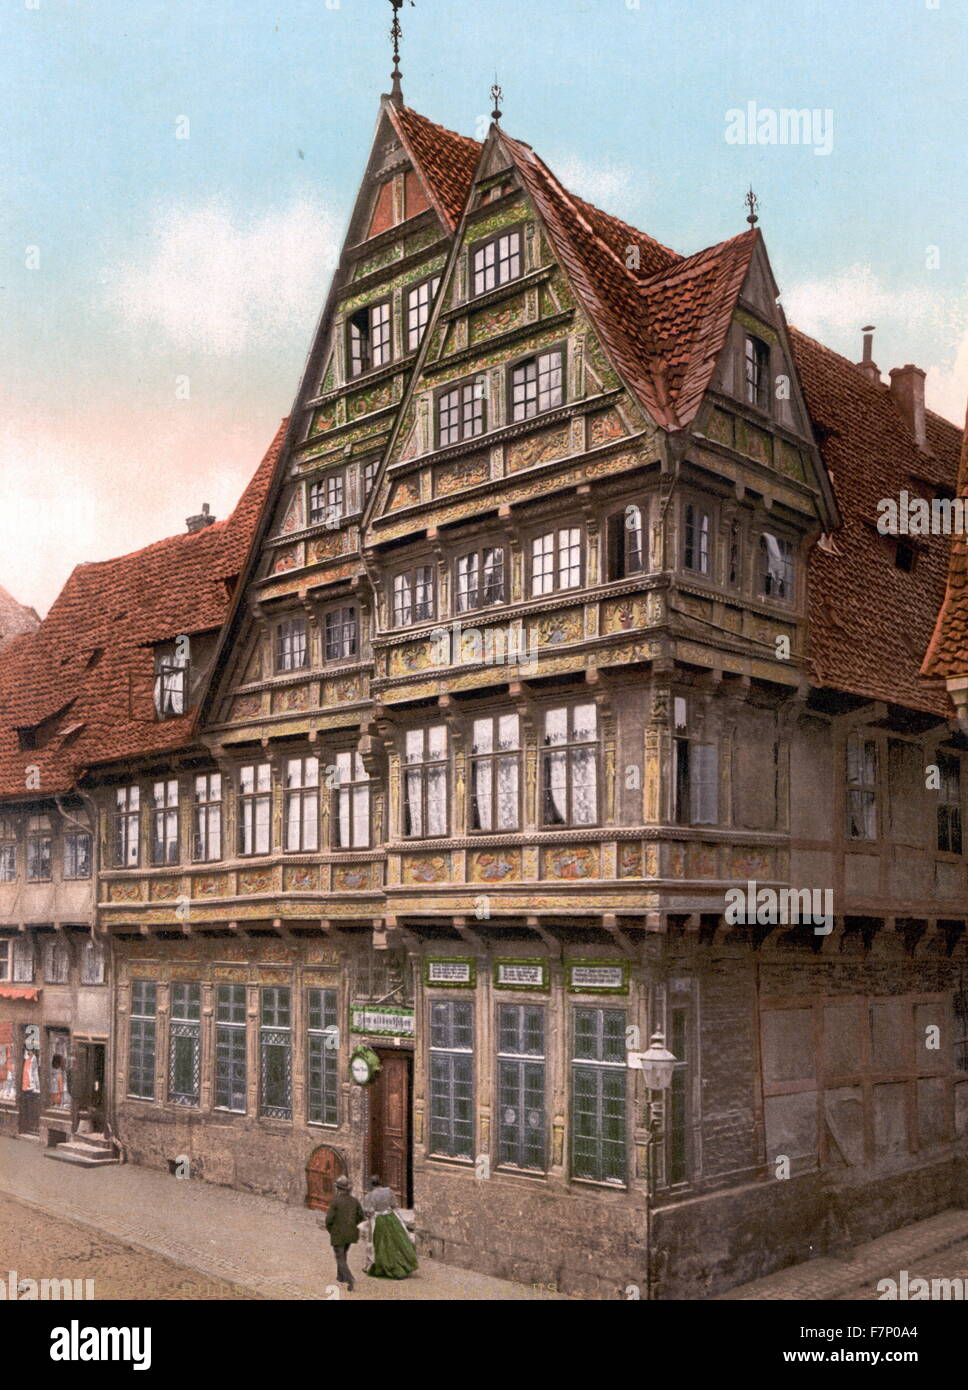 Old house, Hildesheim, Hanover, Germany 1890 - Stock Image